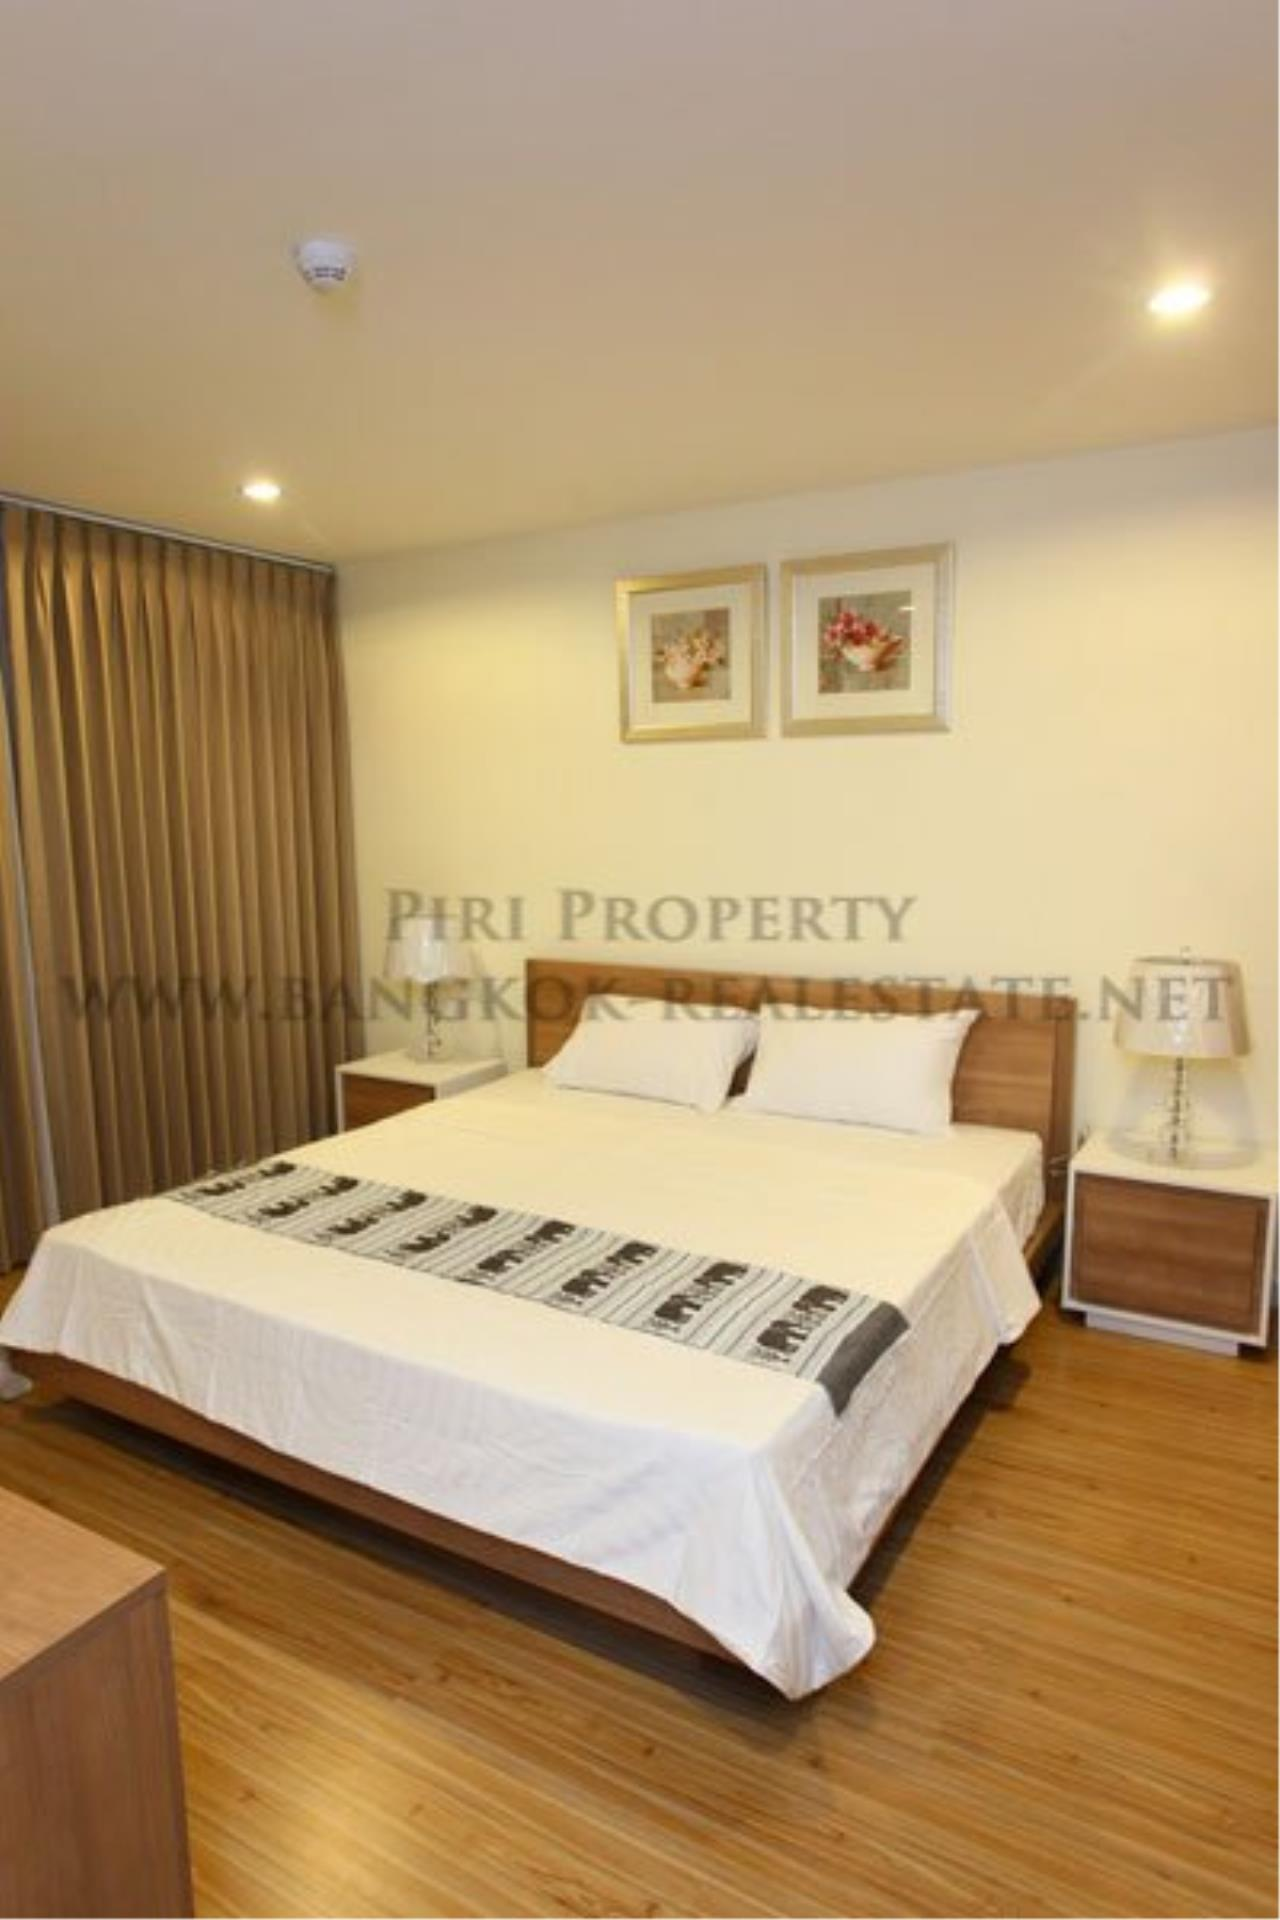 Piri Property Agency's 2 Bedroom Apartment opposite Lumpini Park - Modern Decoration 1